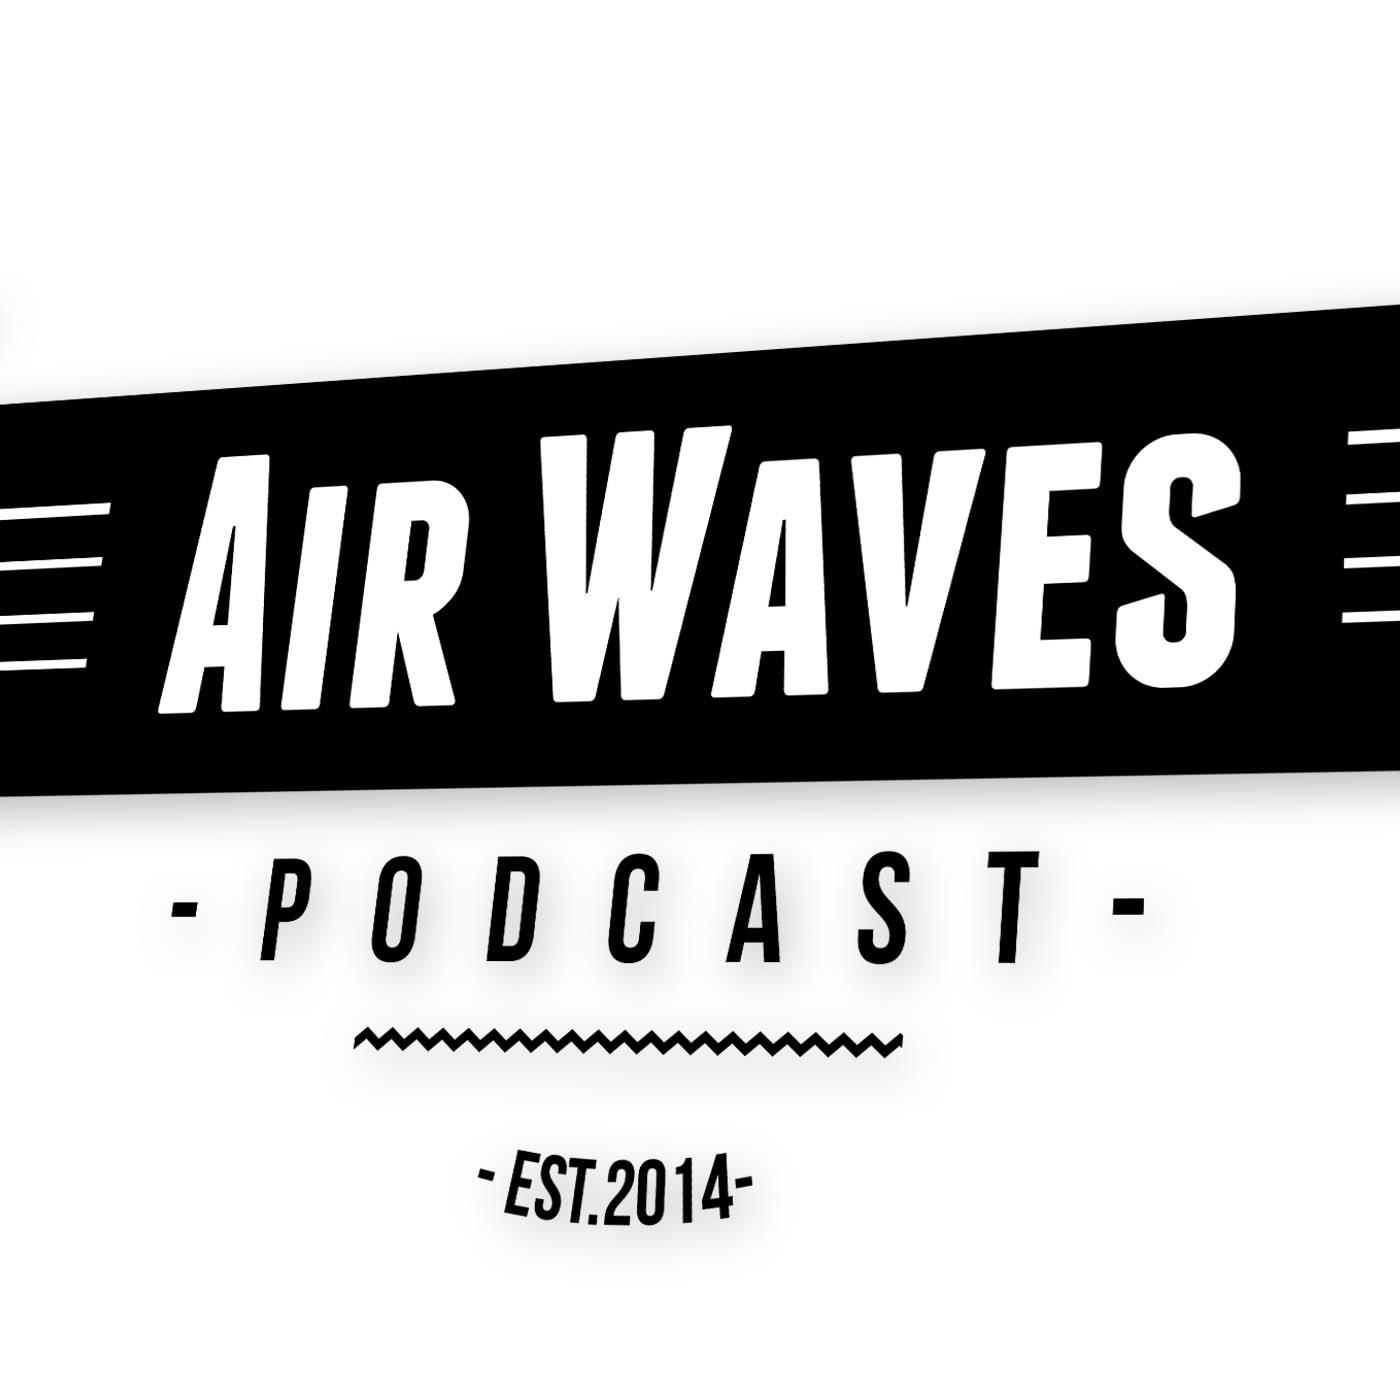 The AirWaves